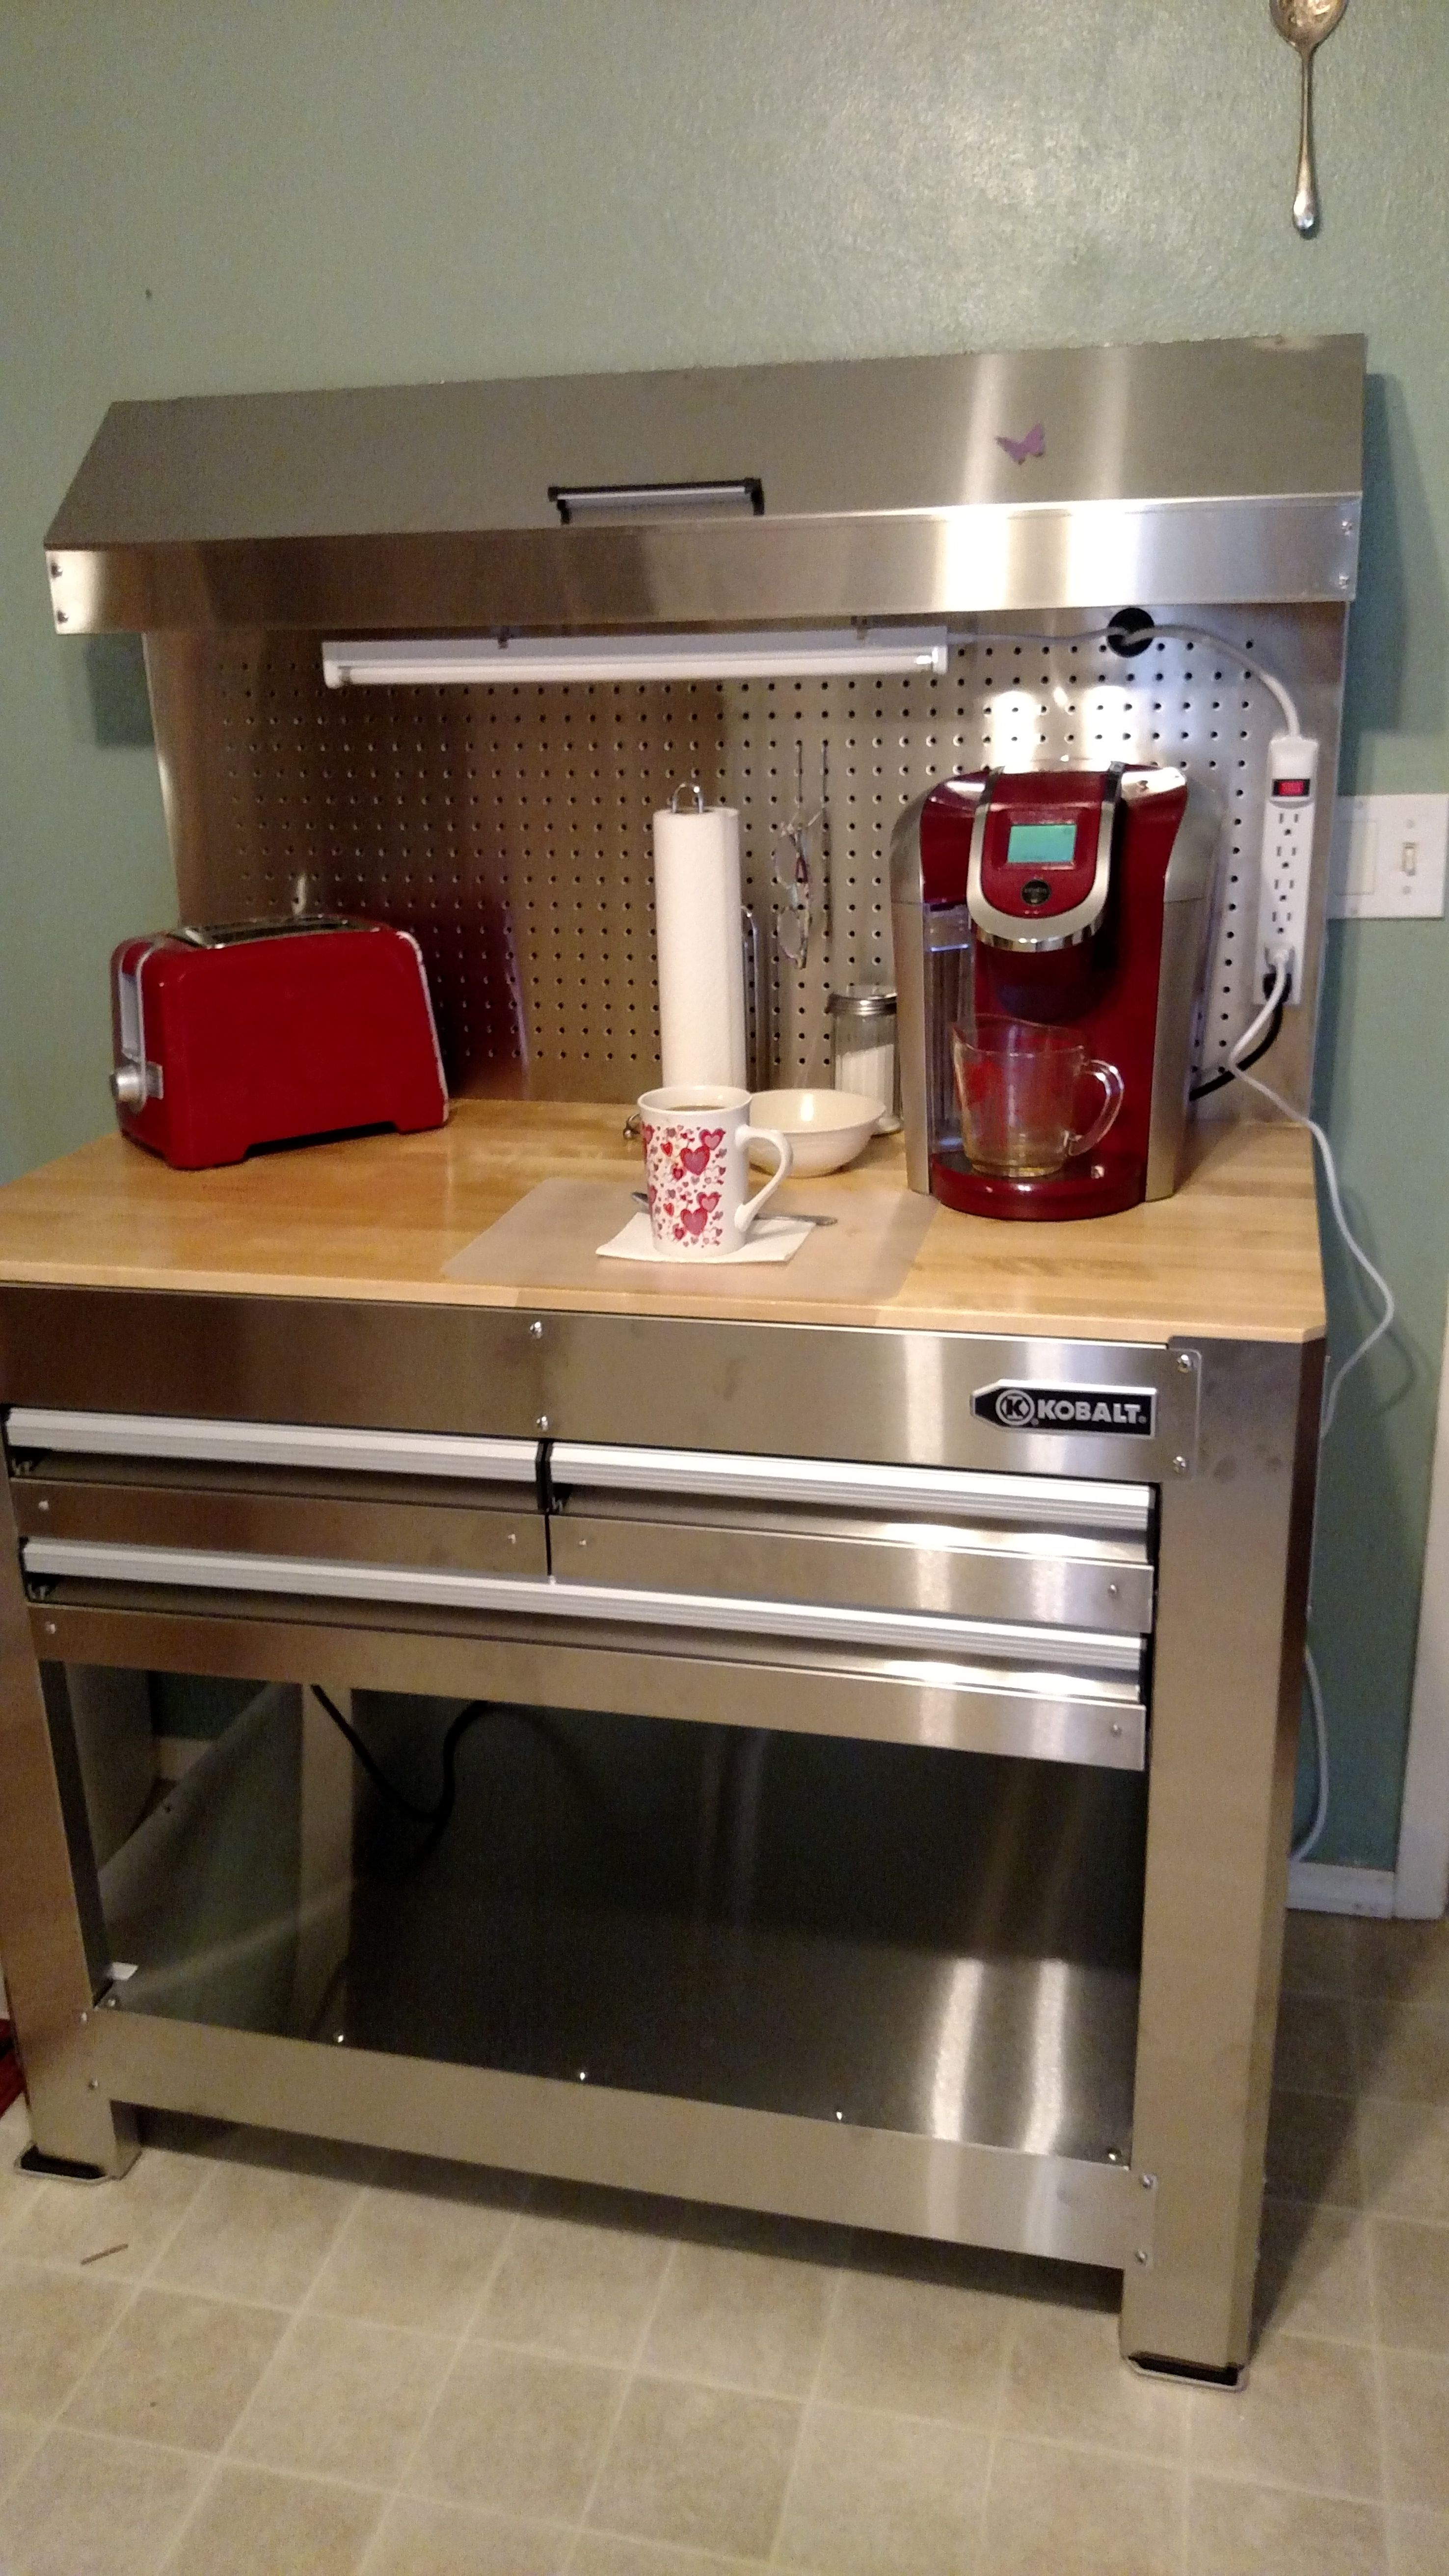 I Used A Kobalt Workbench From Lowes To Make A Coffee Bar In My Small Kitchen The Top Ope Stainless Steel Kitchen Workbench Designs Stainless Steel Work Table